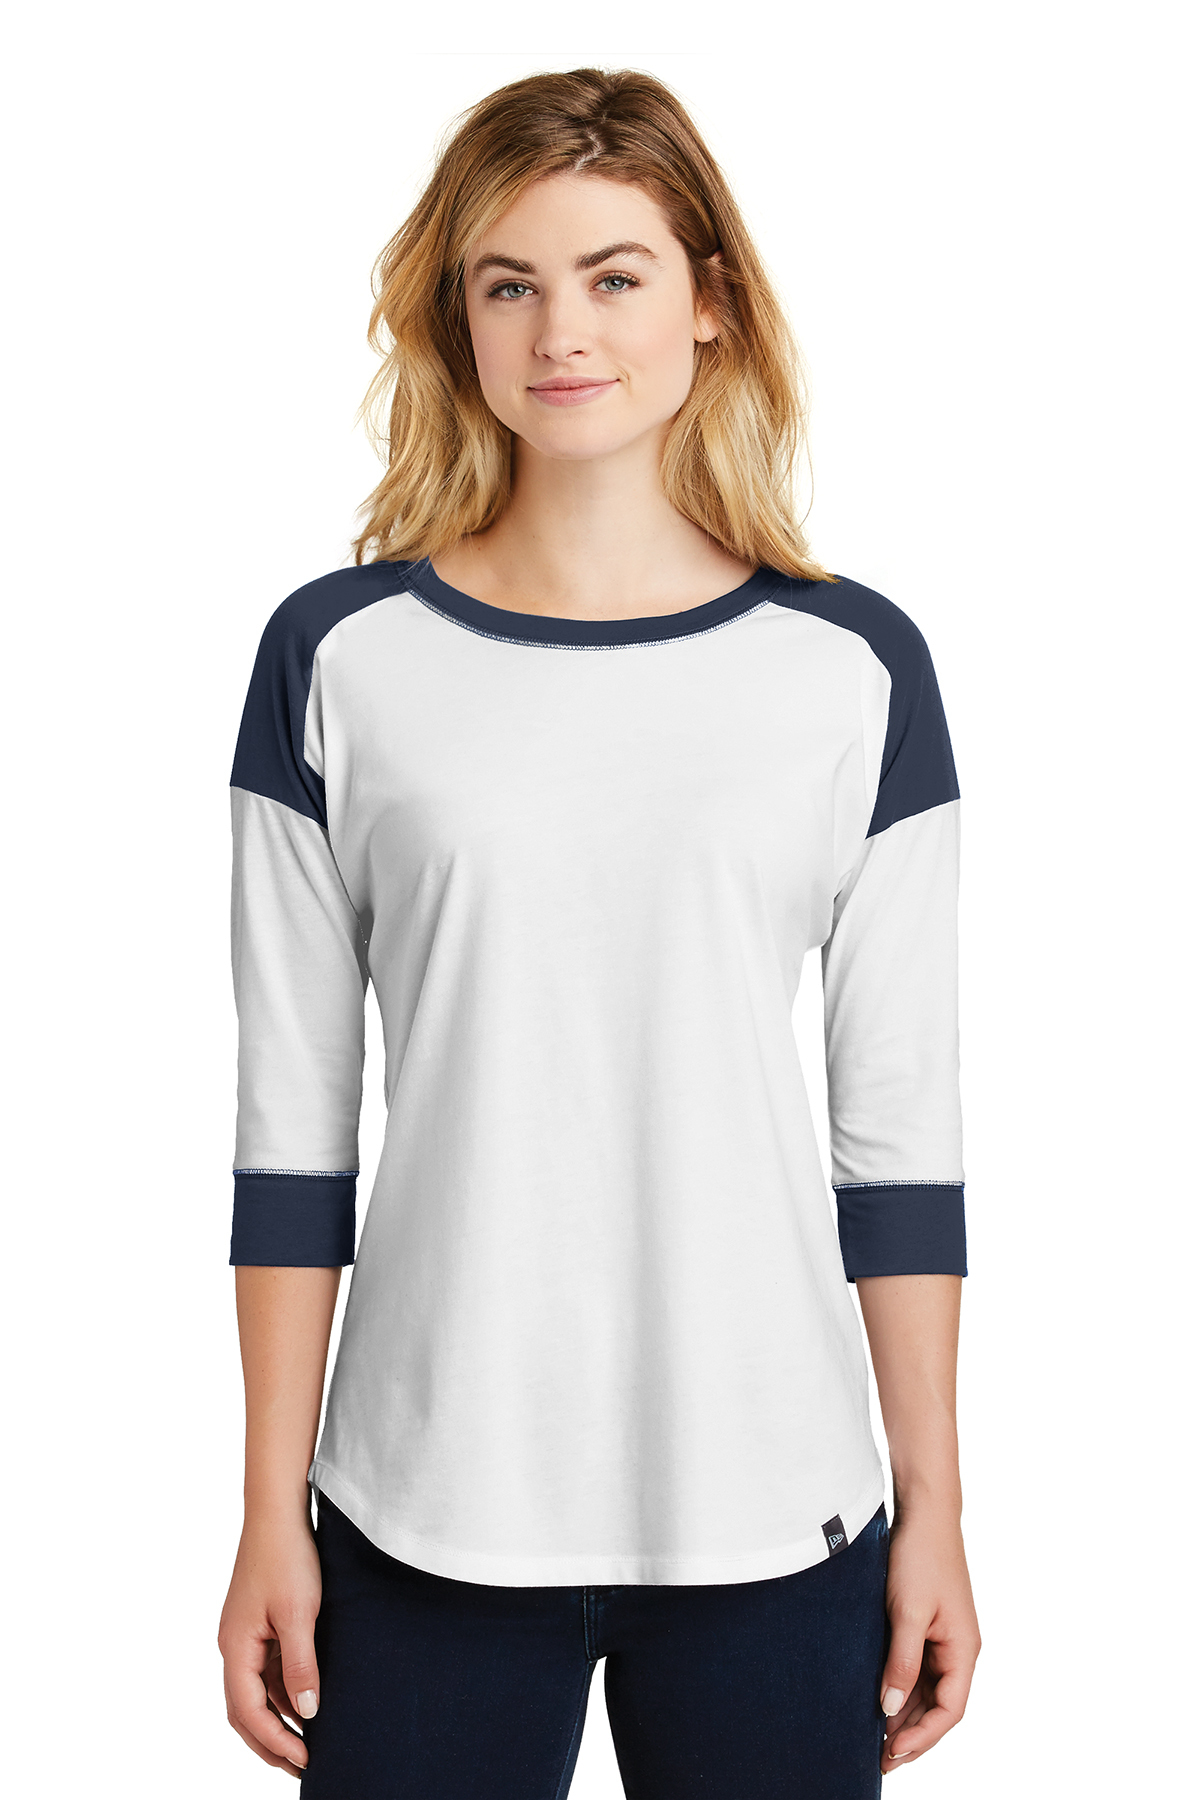 New Era LNEA104 - Ladies Heritage Blend 3/4 Sleeve Baseball Raglan Tee